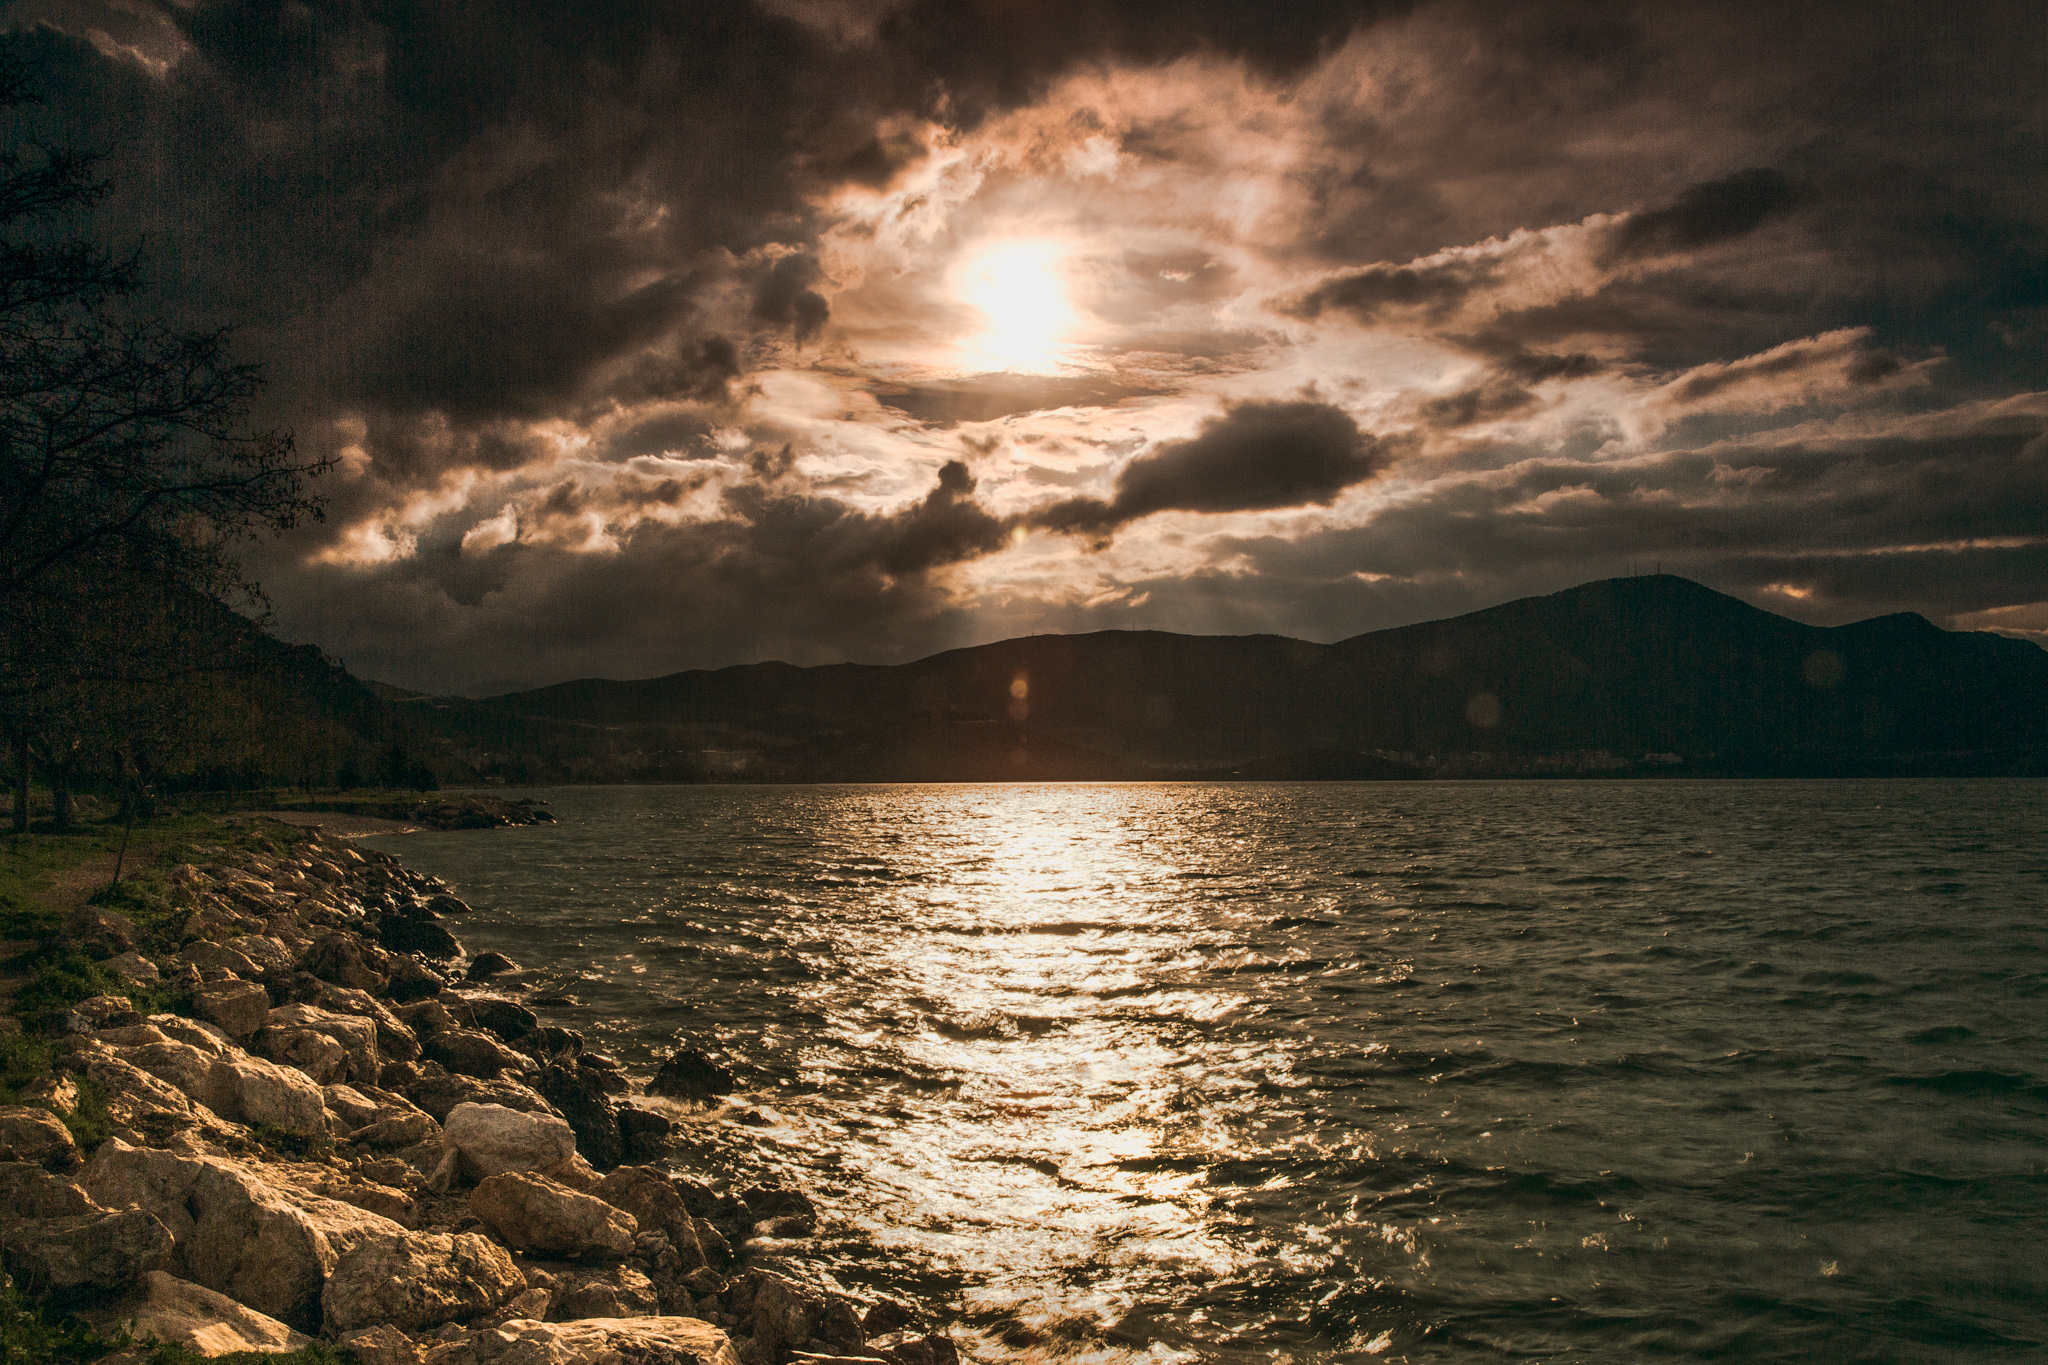 egirdir_causeway-to-yesil-ada-green-island-3825-Edit_sunset-on-rocky-shore.jpg